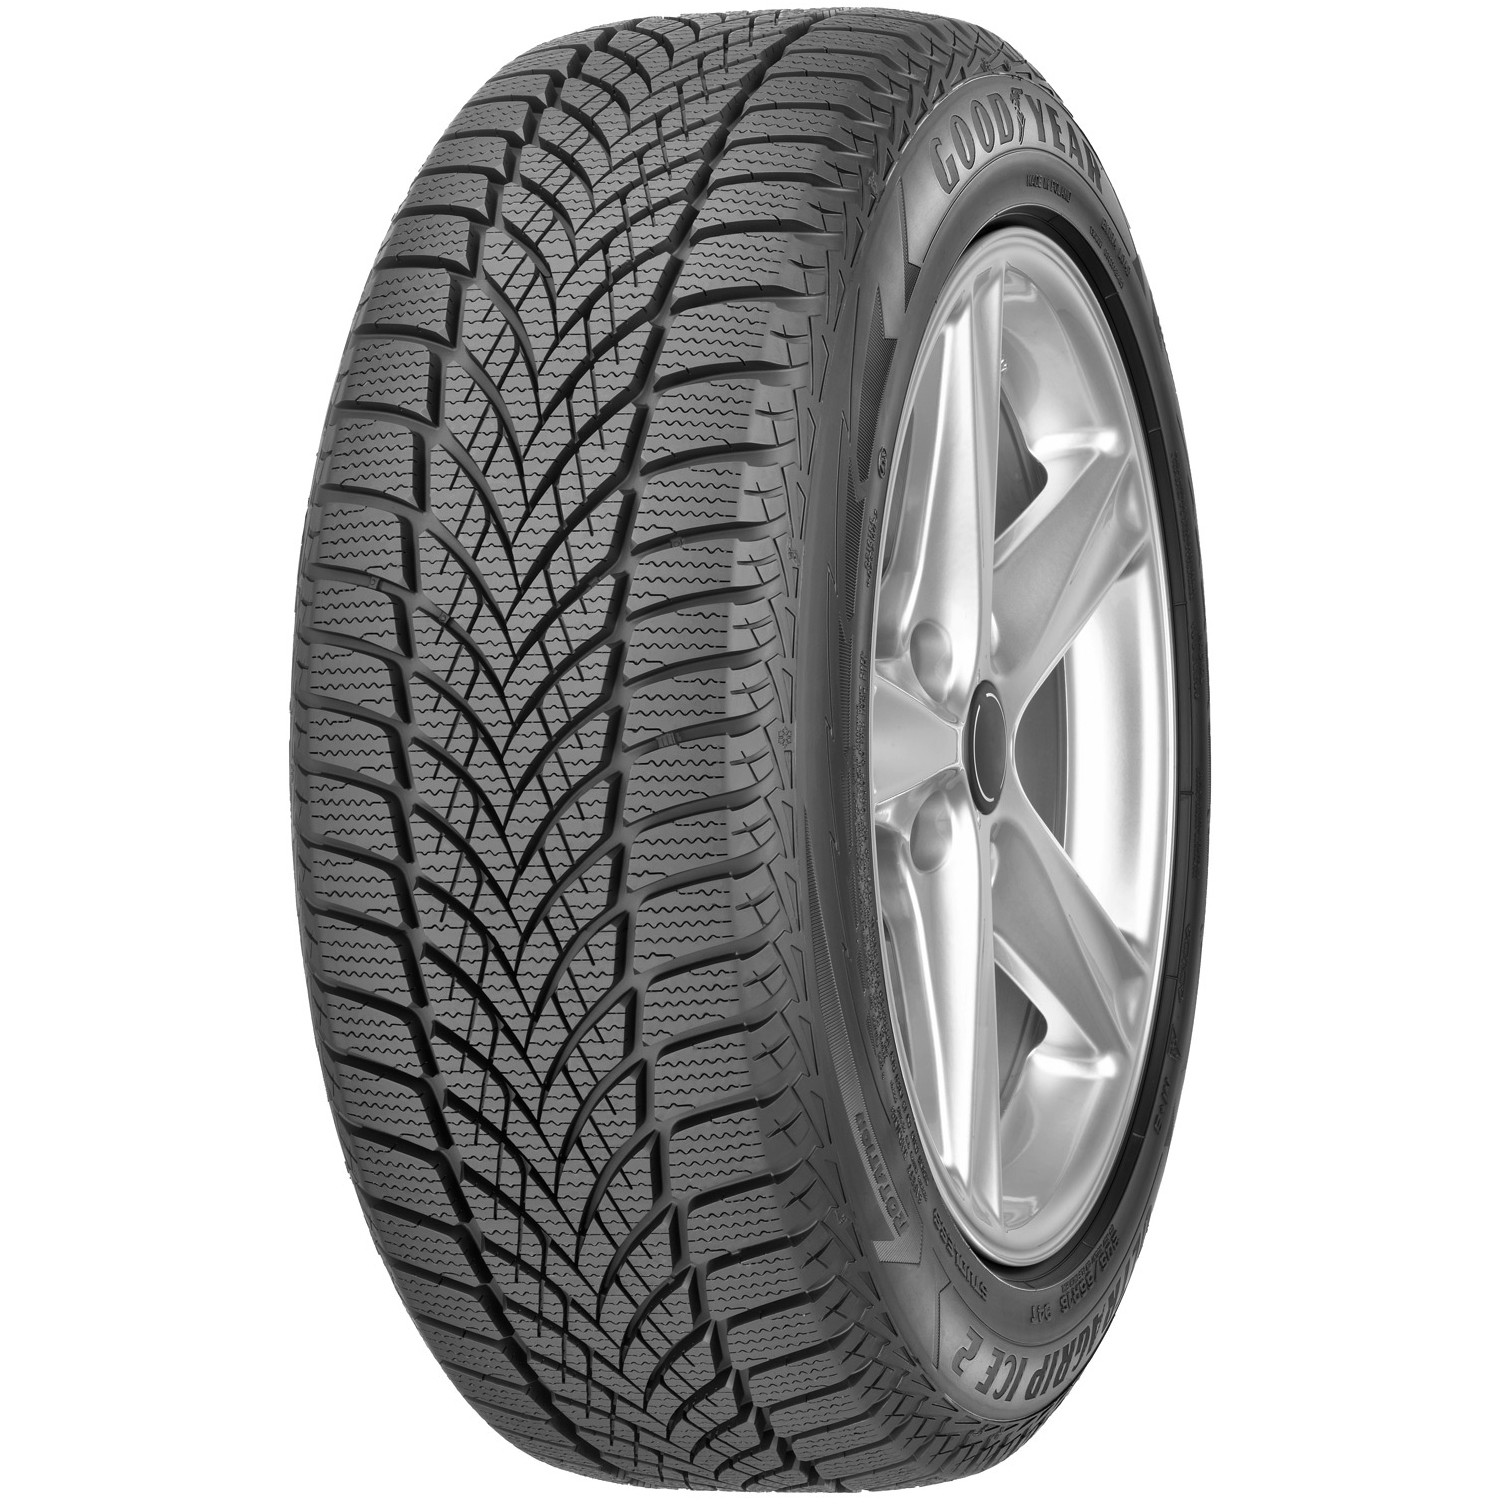 Автошина GOODYEAR ULTRAGRIP ICE 2 235/45 R18 98T Зима